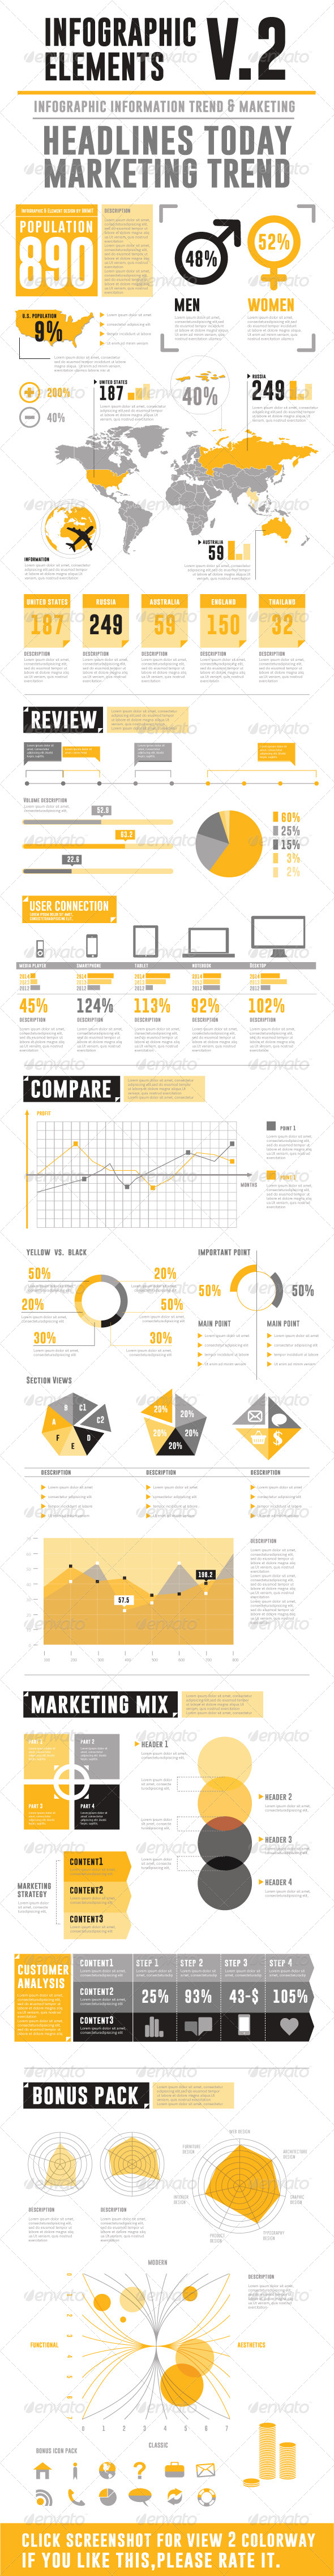 GraphicRiver Infographic Elements V.2 5915513